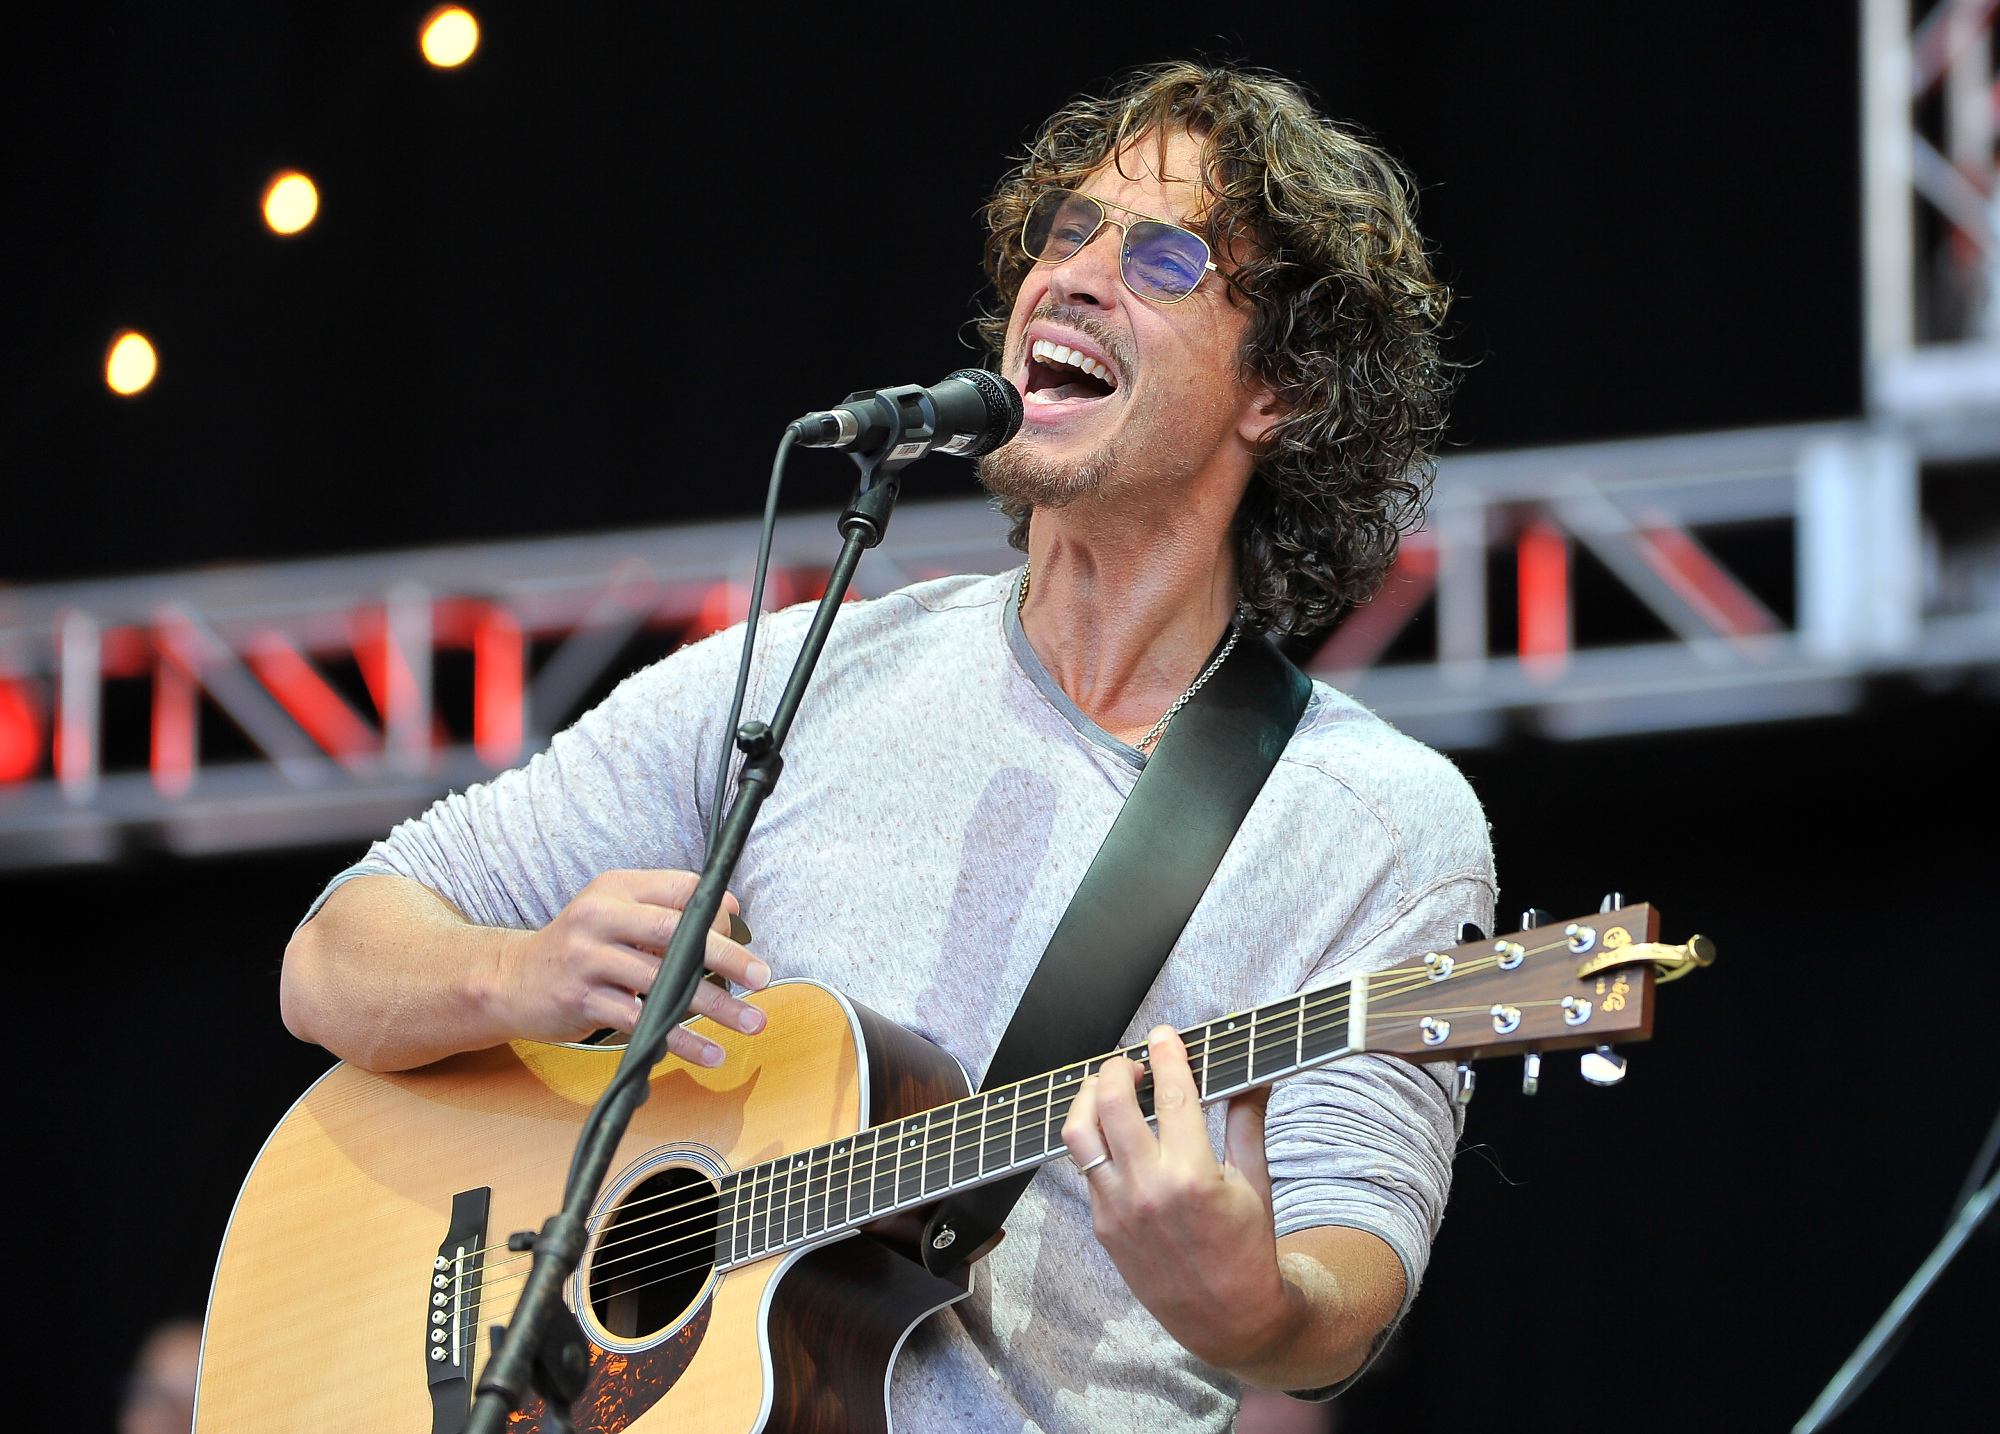 Chris Cornell performing an acoustic song